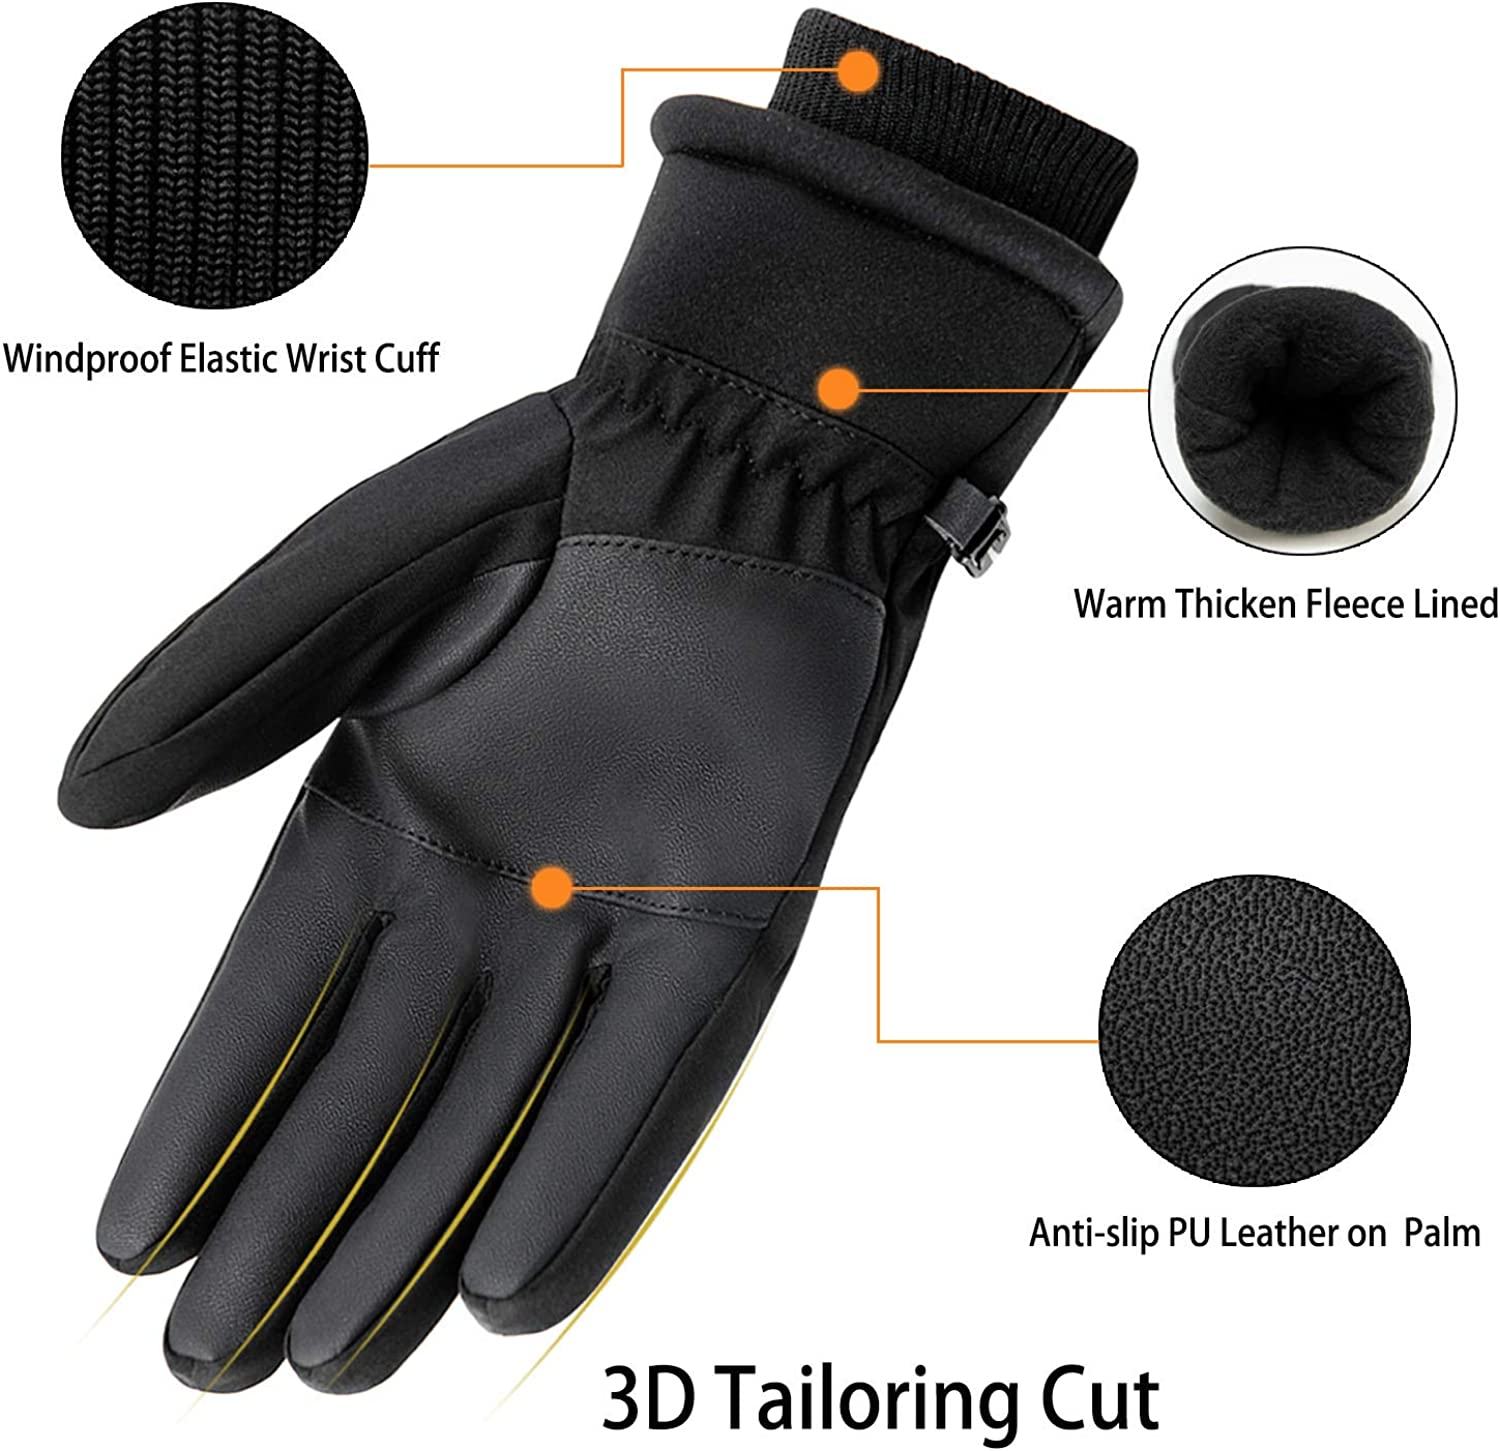 GORELOX Winter Gloves for Men and Women - Touch Screen Waterproof Windproof Thermal Ski Gloves in Cold Weather for Driving Motorcycle Cycling Warmest Gloves : Clothing